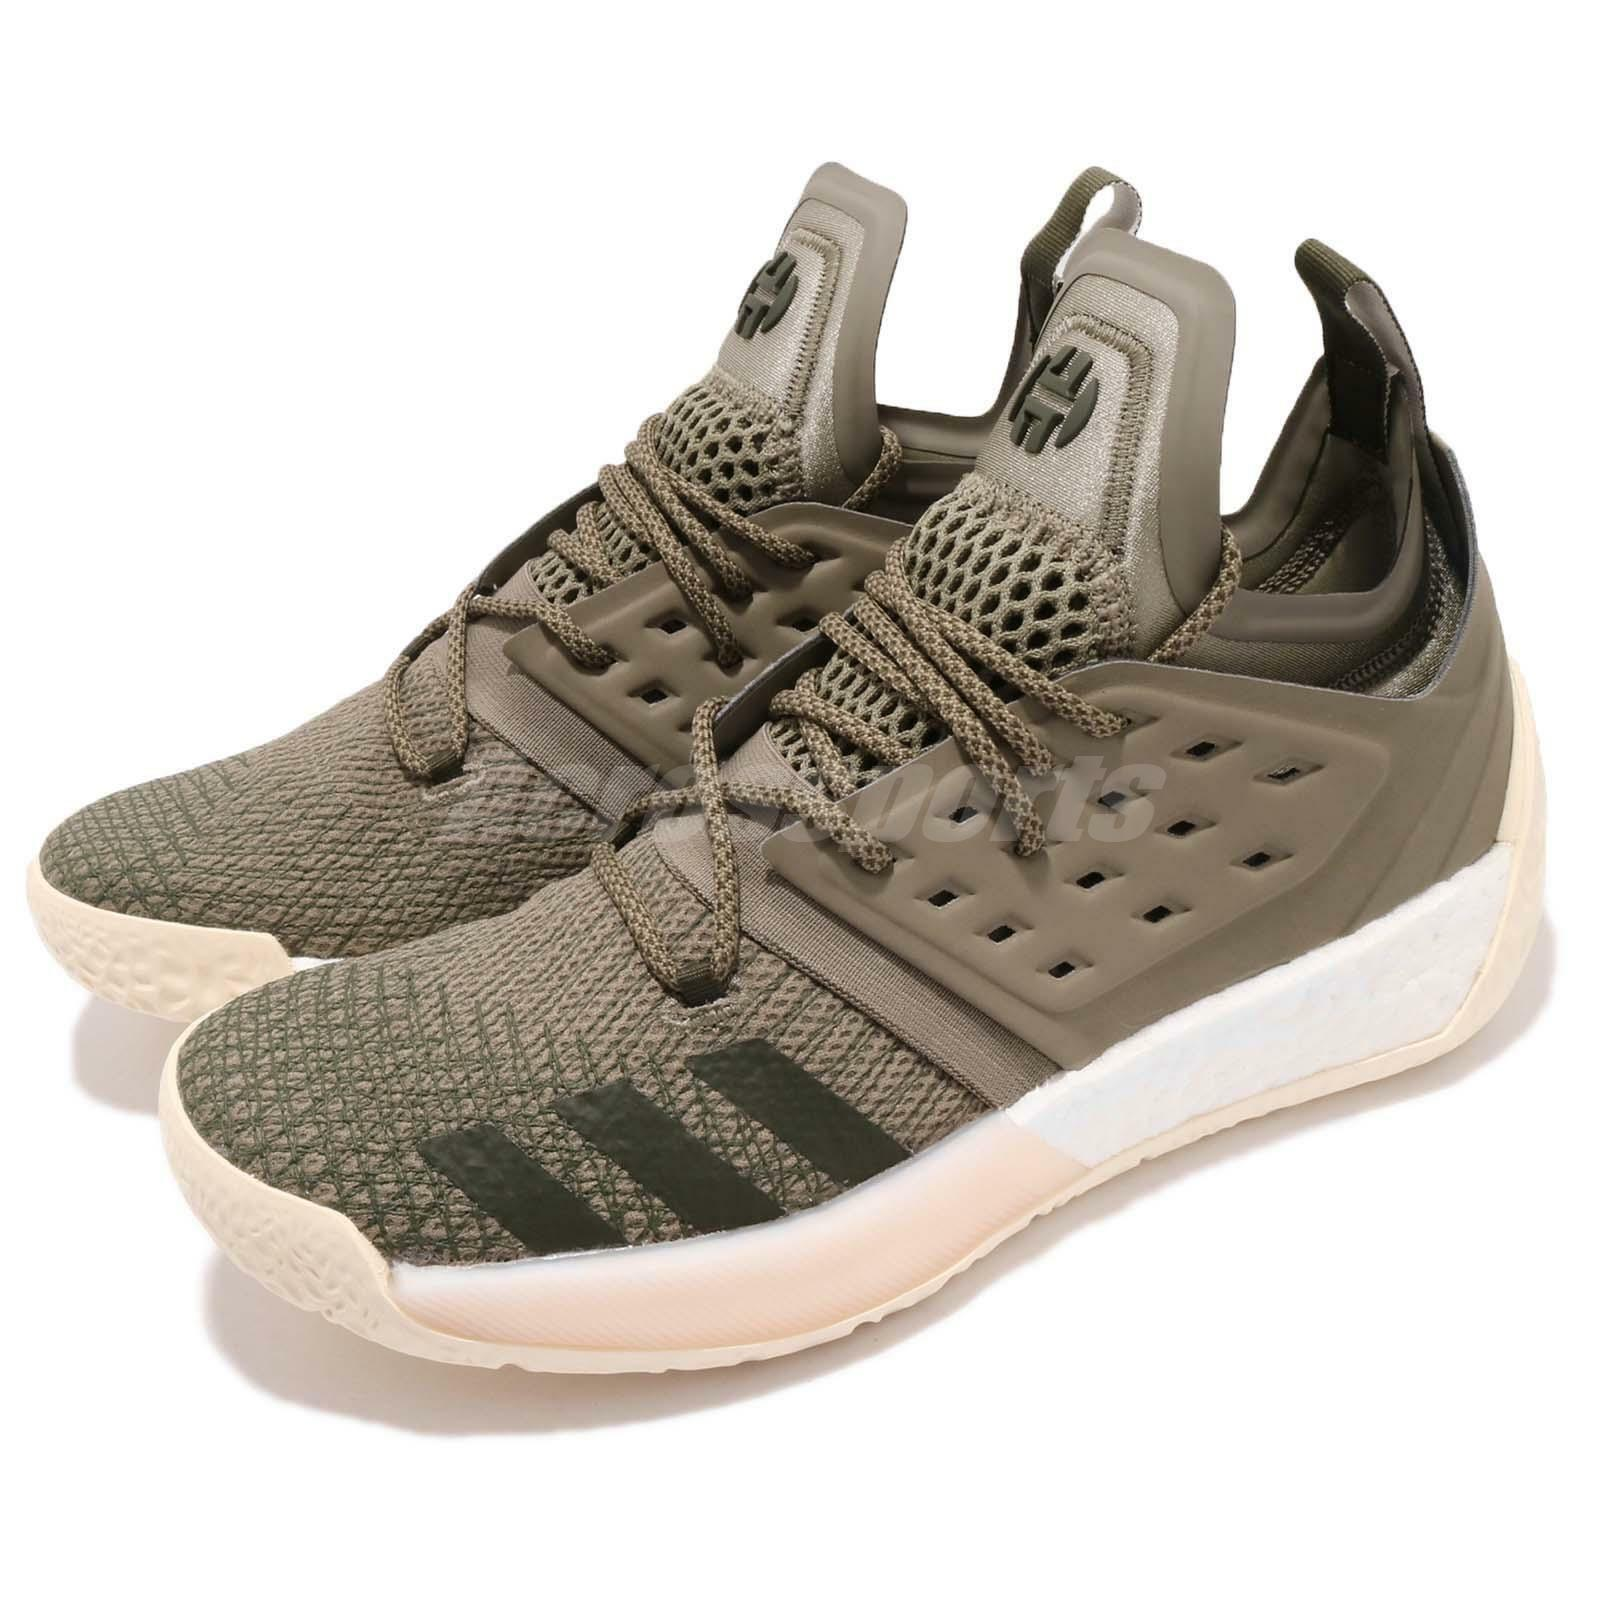 adidas Harden Vol. 2 James Boost Night Shoes Cargo Green Men Basketball Shoes Night AQ0027 f51e7c